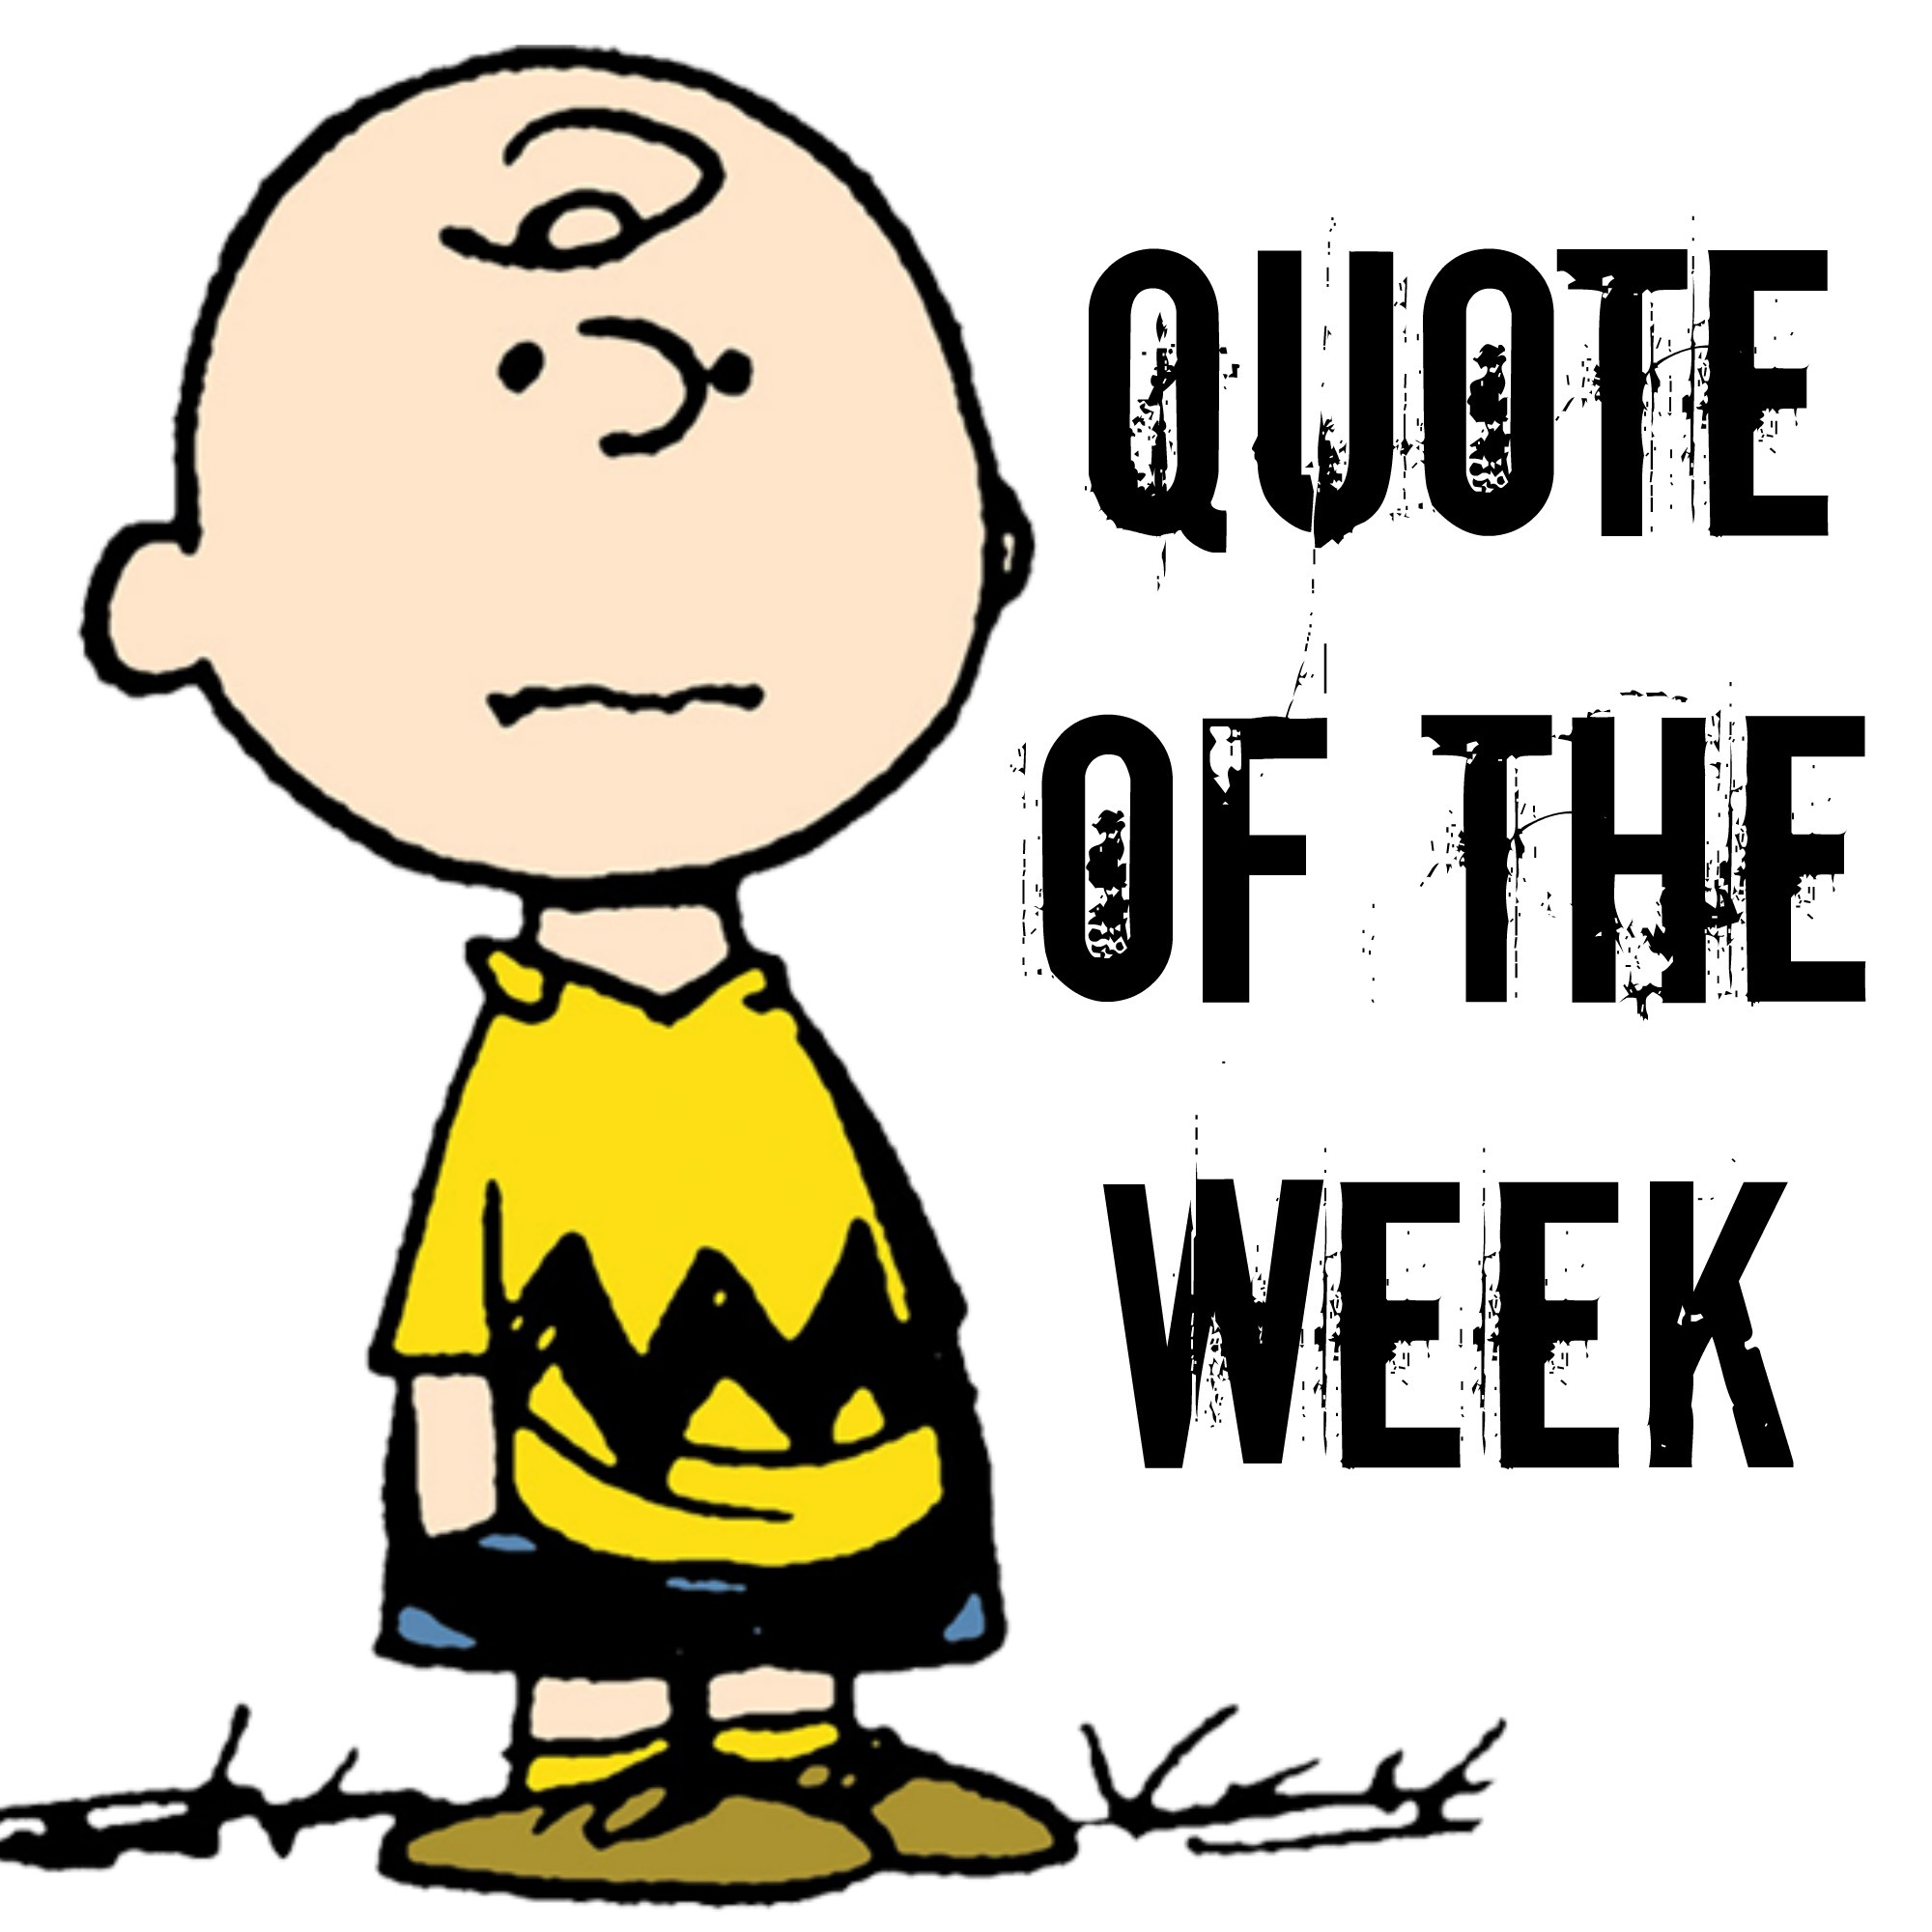 Quotable // from Charles Schulz